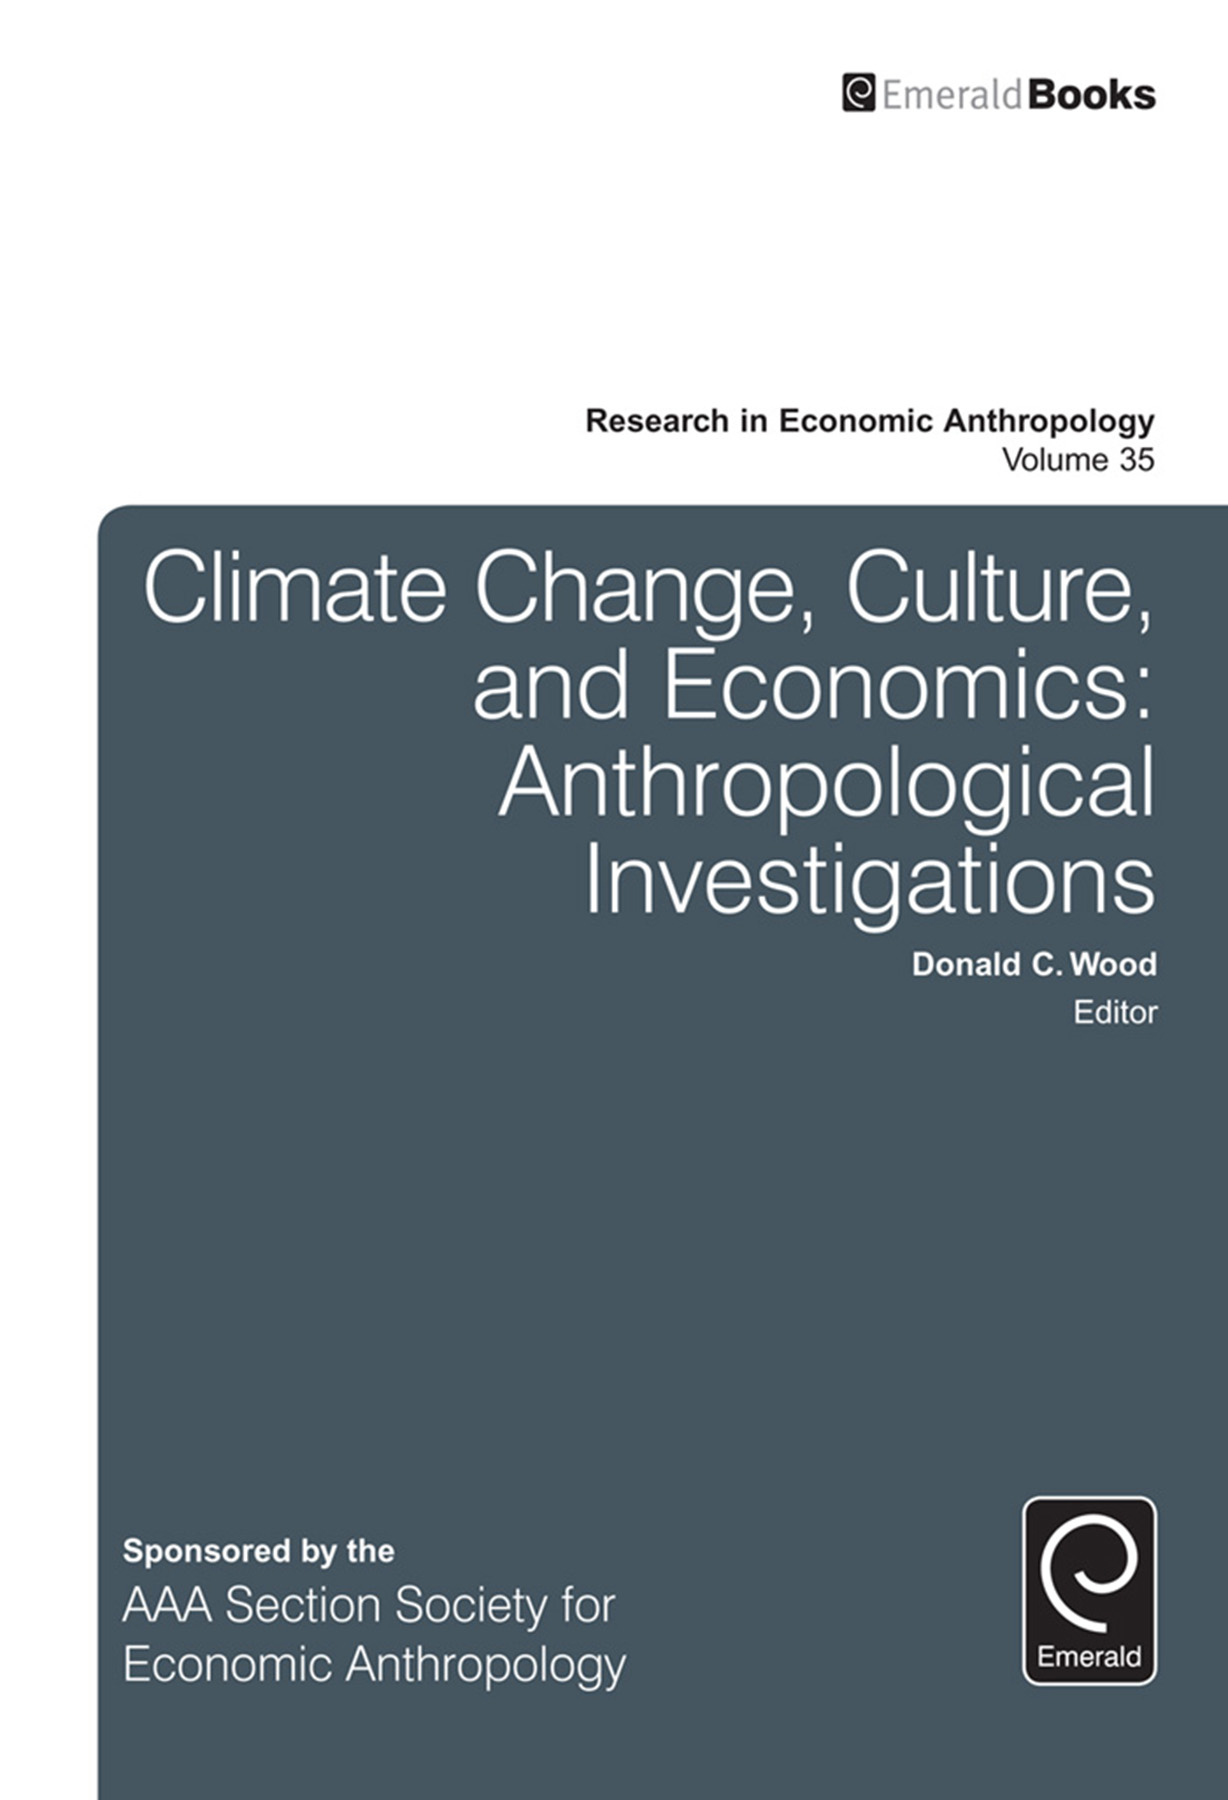 Download Ebook Climate Change, Culture, and Economics by Donald C. Wood Pdf